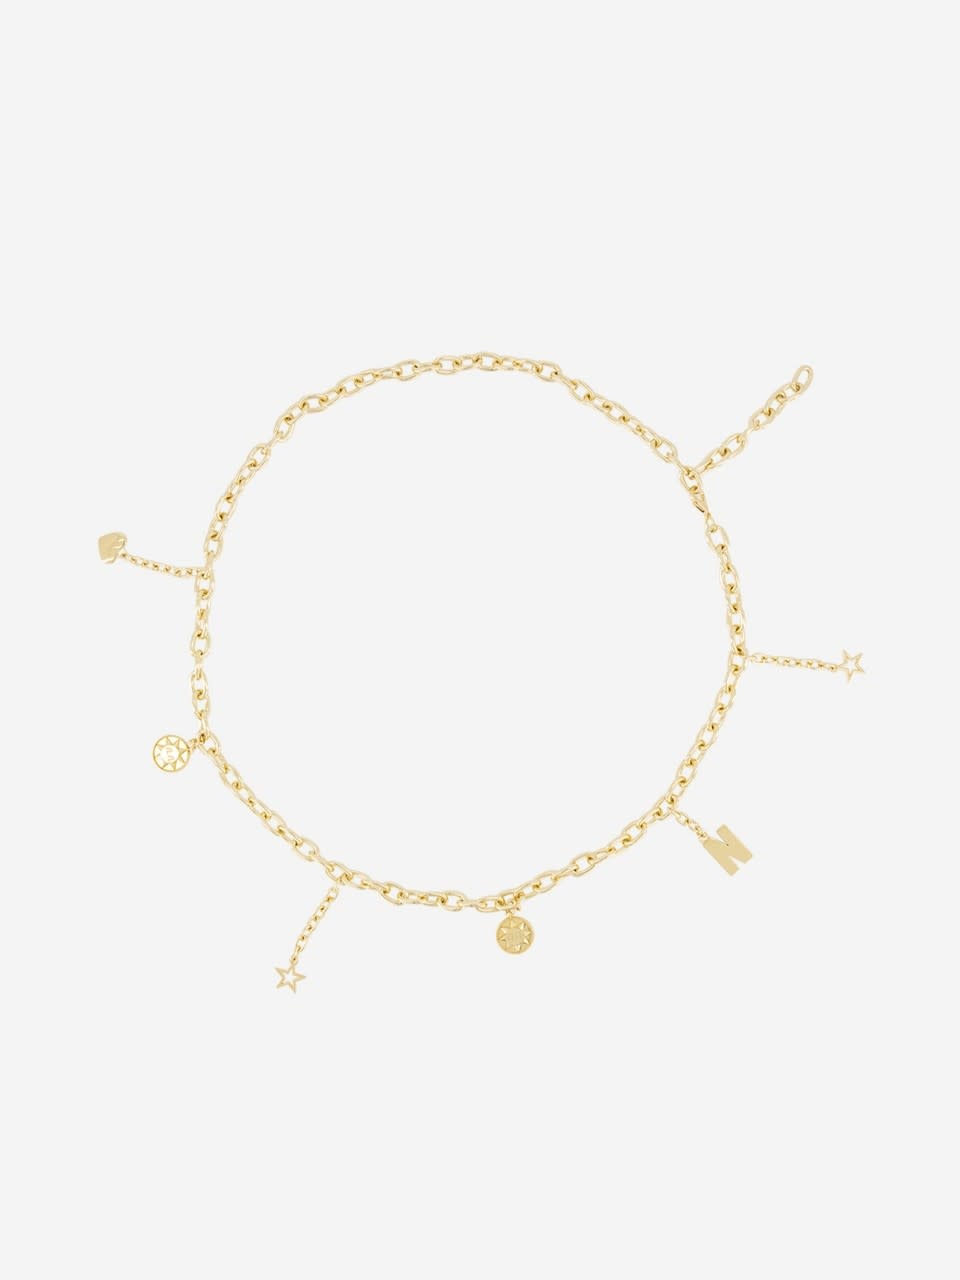 Nik & Nik Golden chain belt with charms